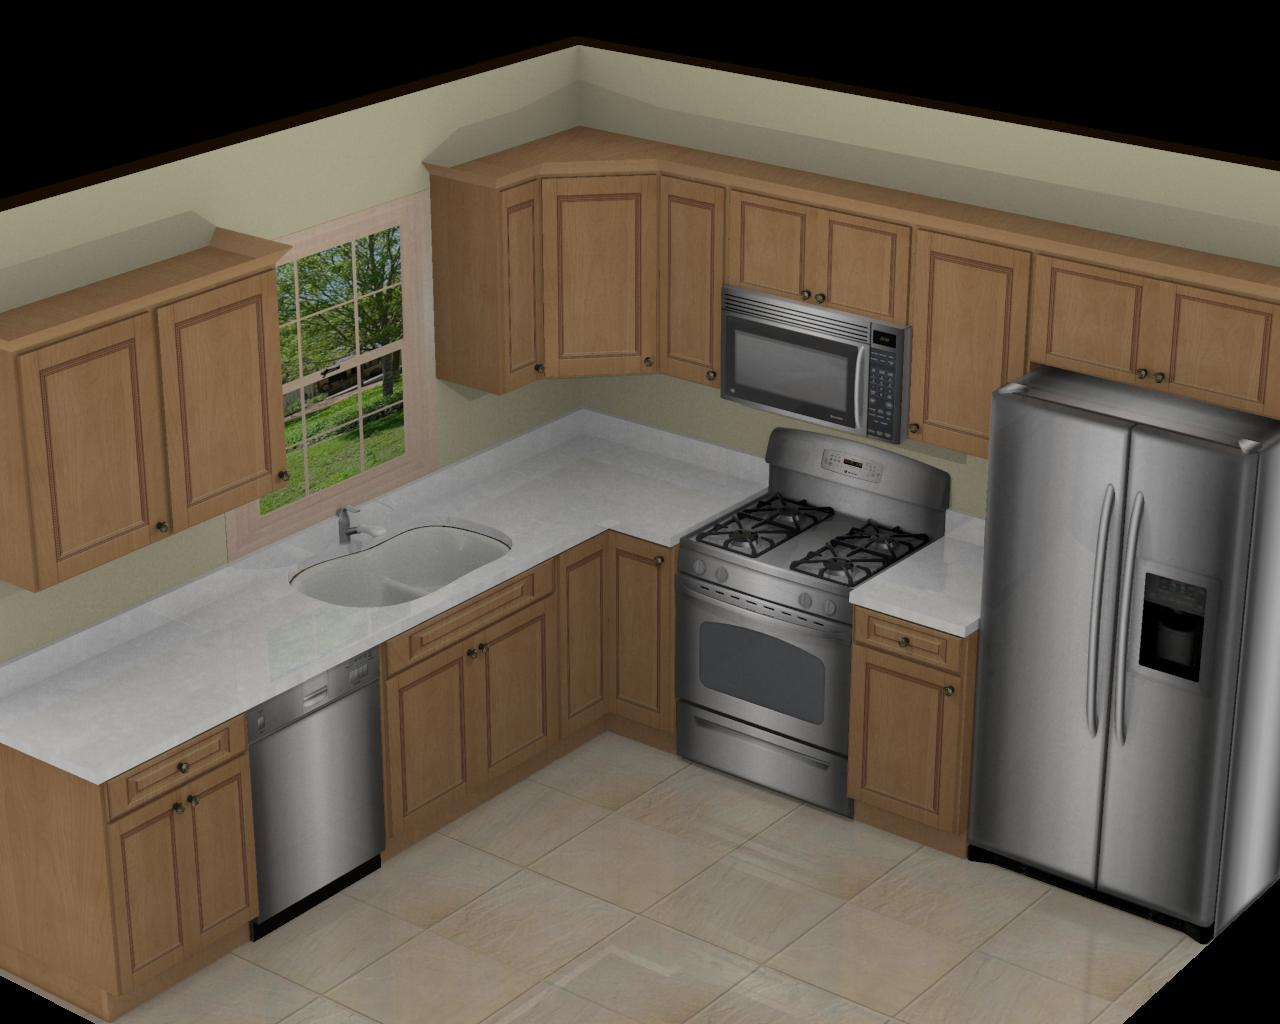 Foundation dezin decor 3d kitchen model design for Kitchen design ideas photos